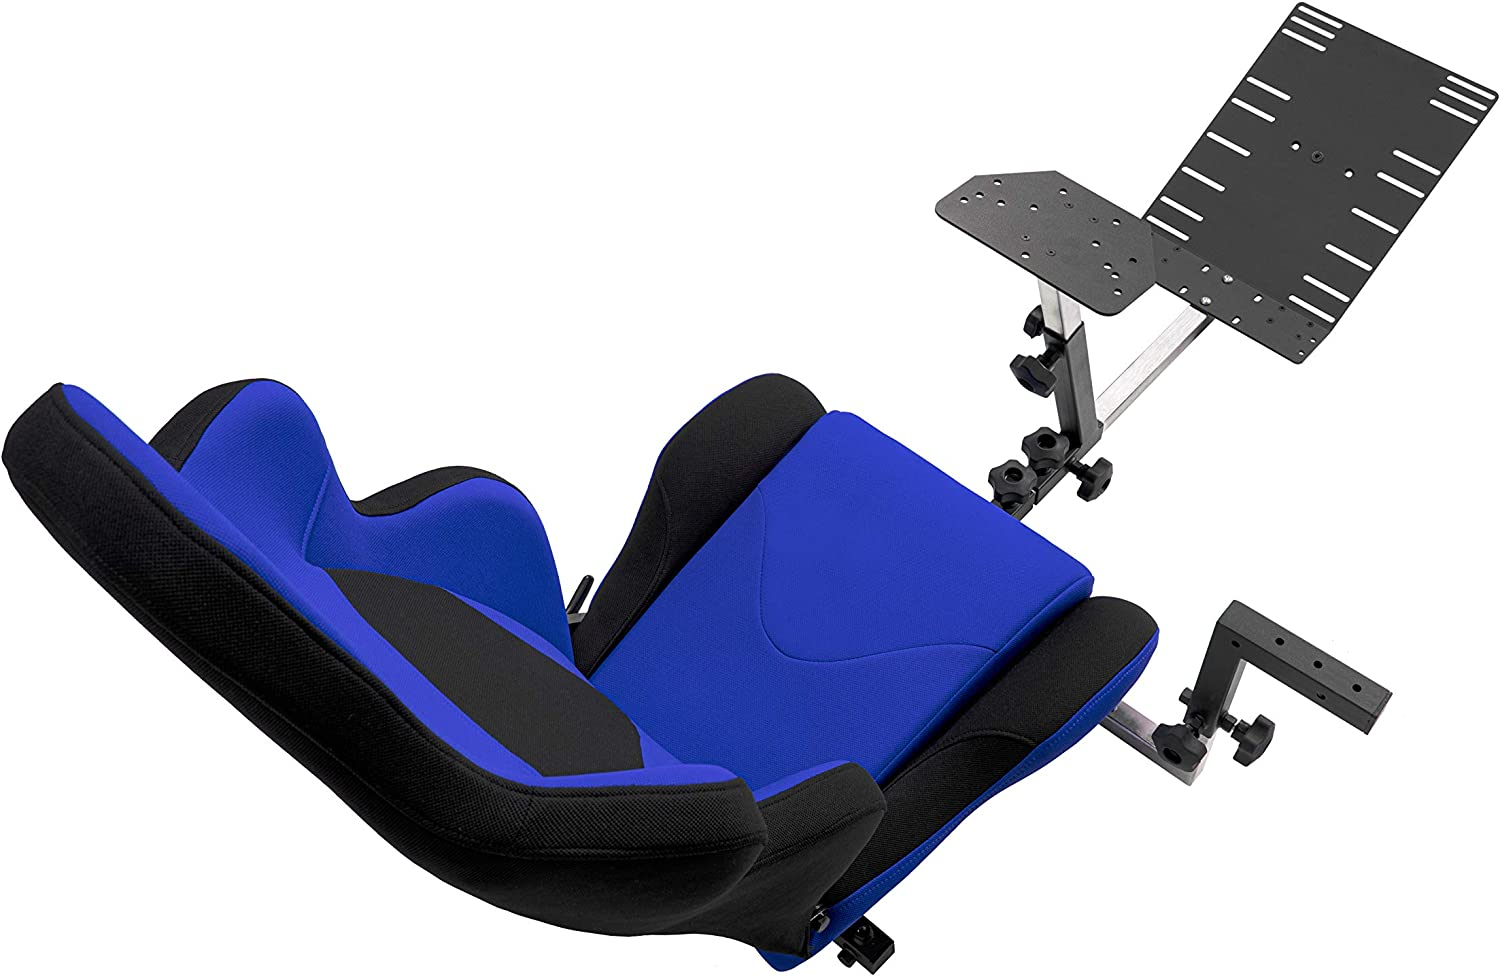 G920 Fits All Logitech G29 Compatible with Xbox One All Fanatec Wheels PC Platforms All Thrustmaster Openwheeler GEN2 Racing Wheel Stand Cockpit Blue on Black Playstation